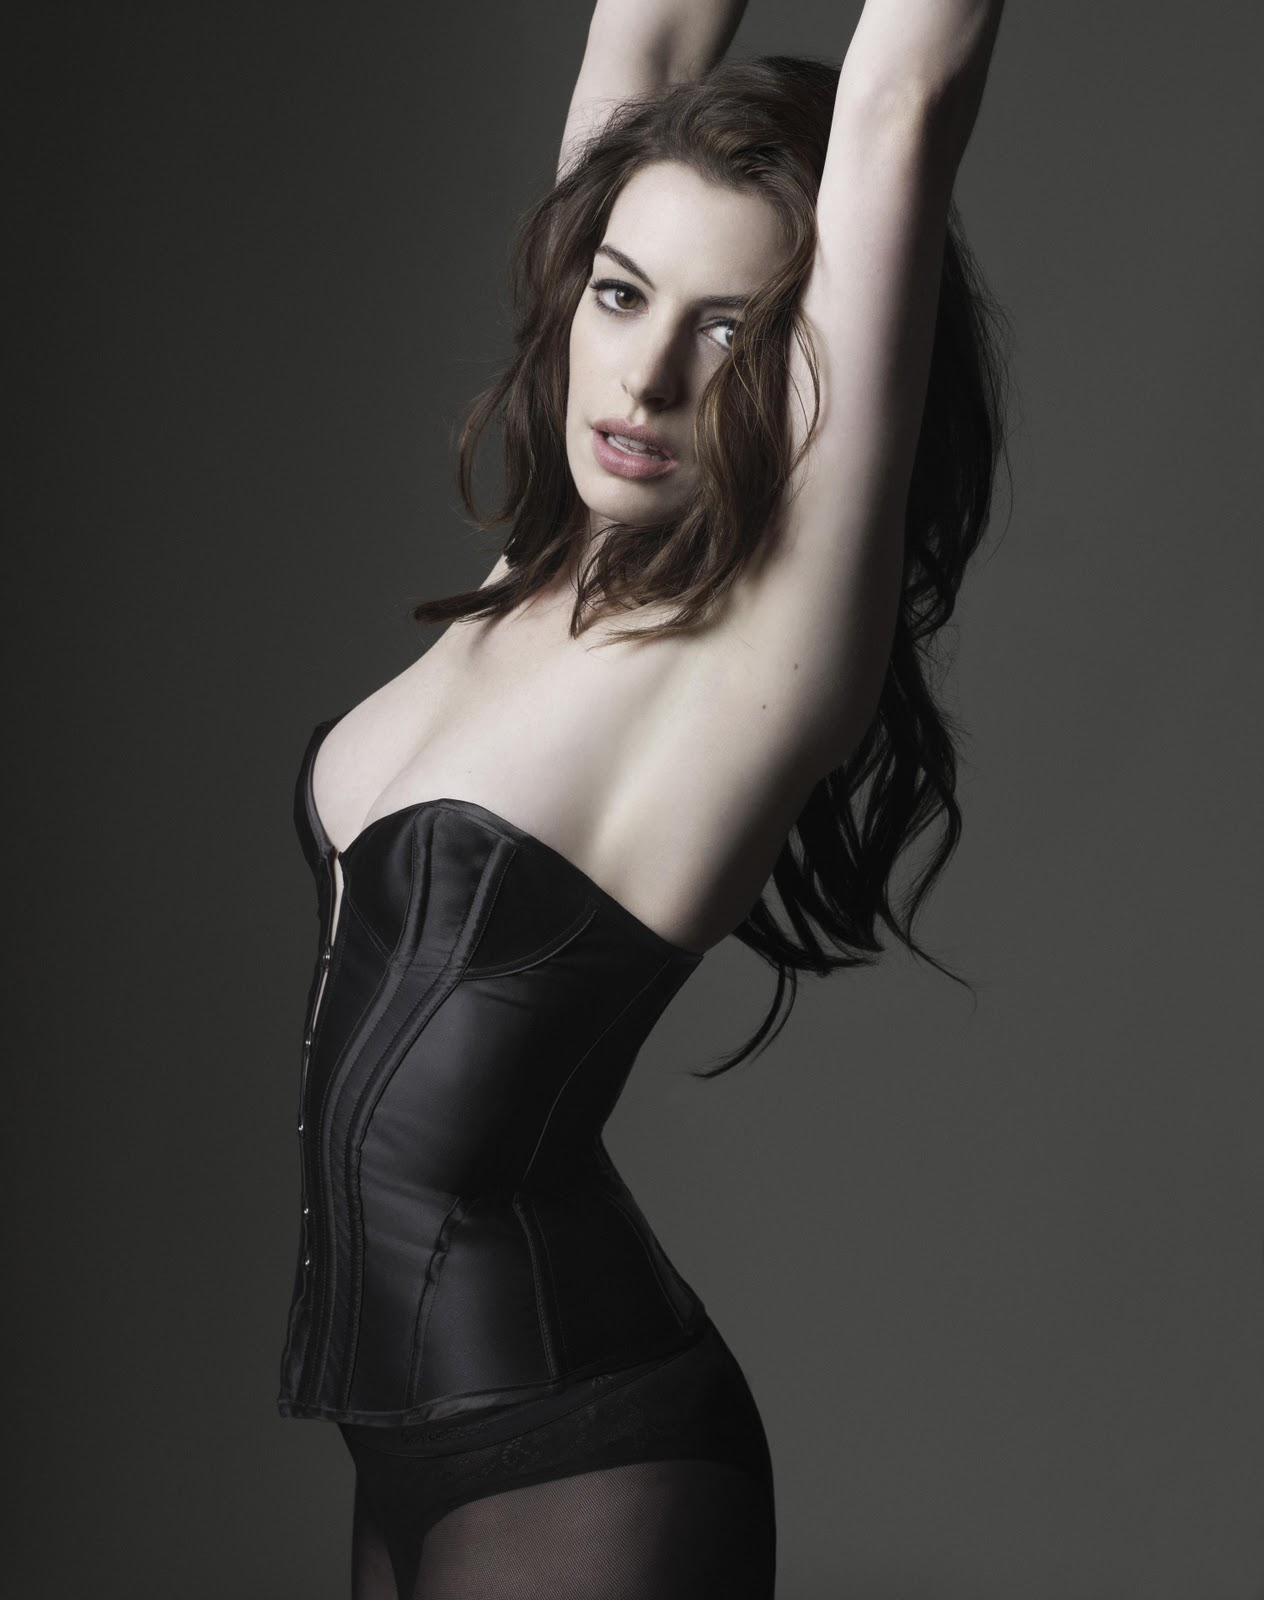 Anne hathaway girl Sex